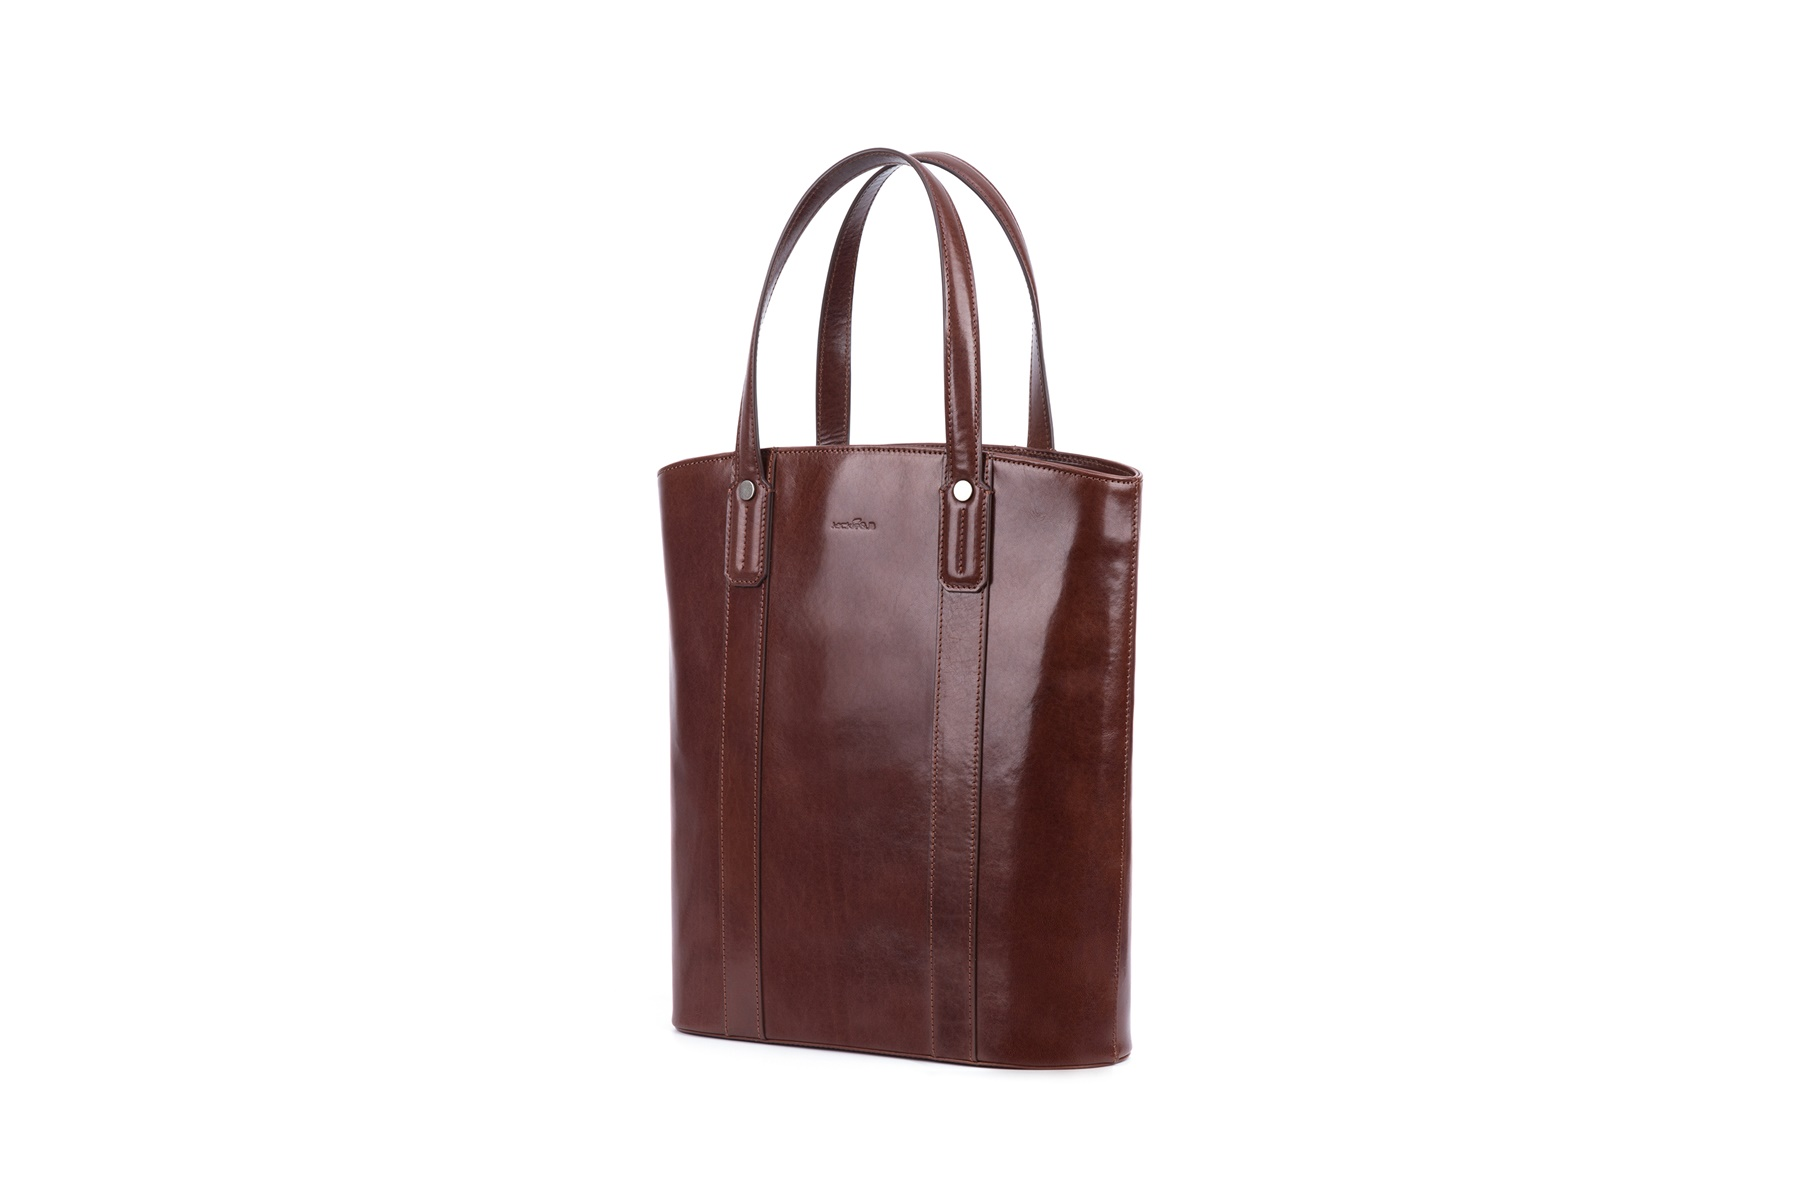 GF bags-Womens Work Tote Tote Leather Handle With Zipper Closure-5